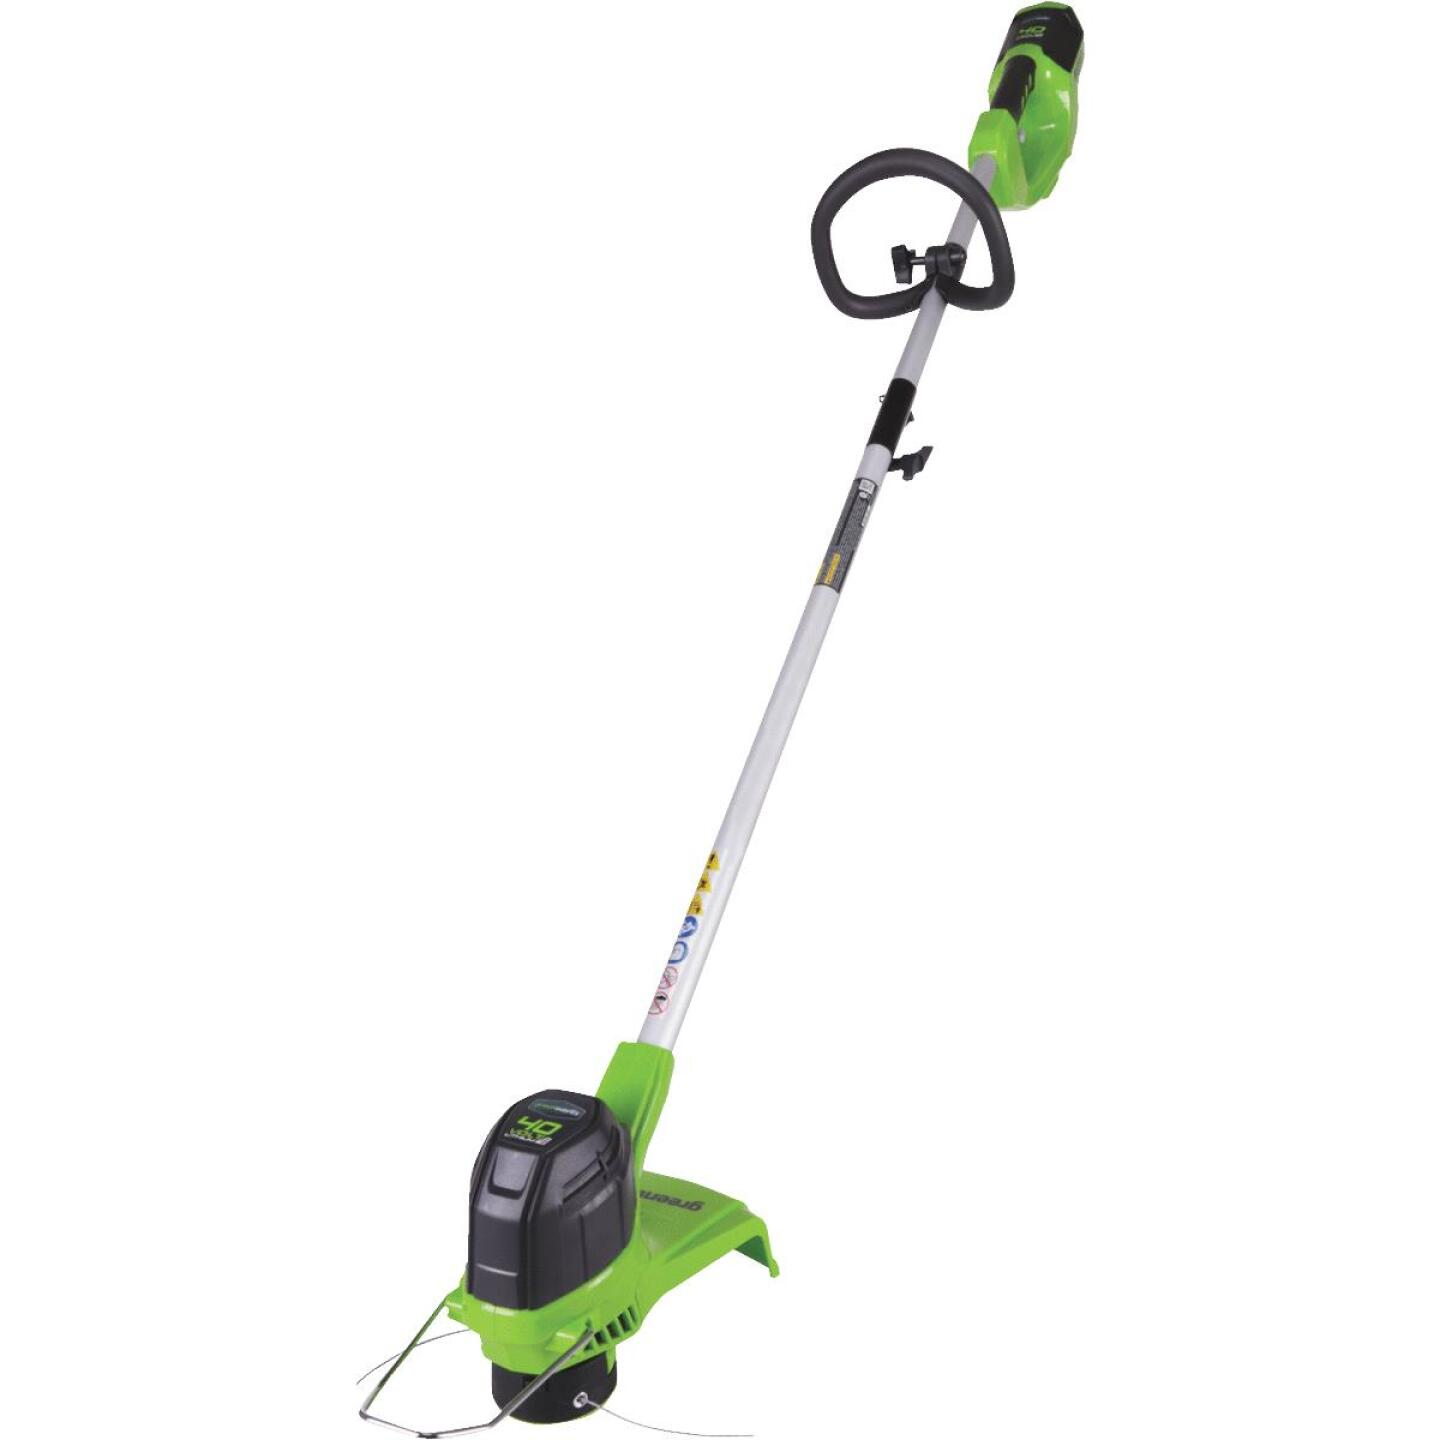 Greenworks G-Max 40V 12 In. Lithium Ion Straight Cordless String Trimmer Image 1